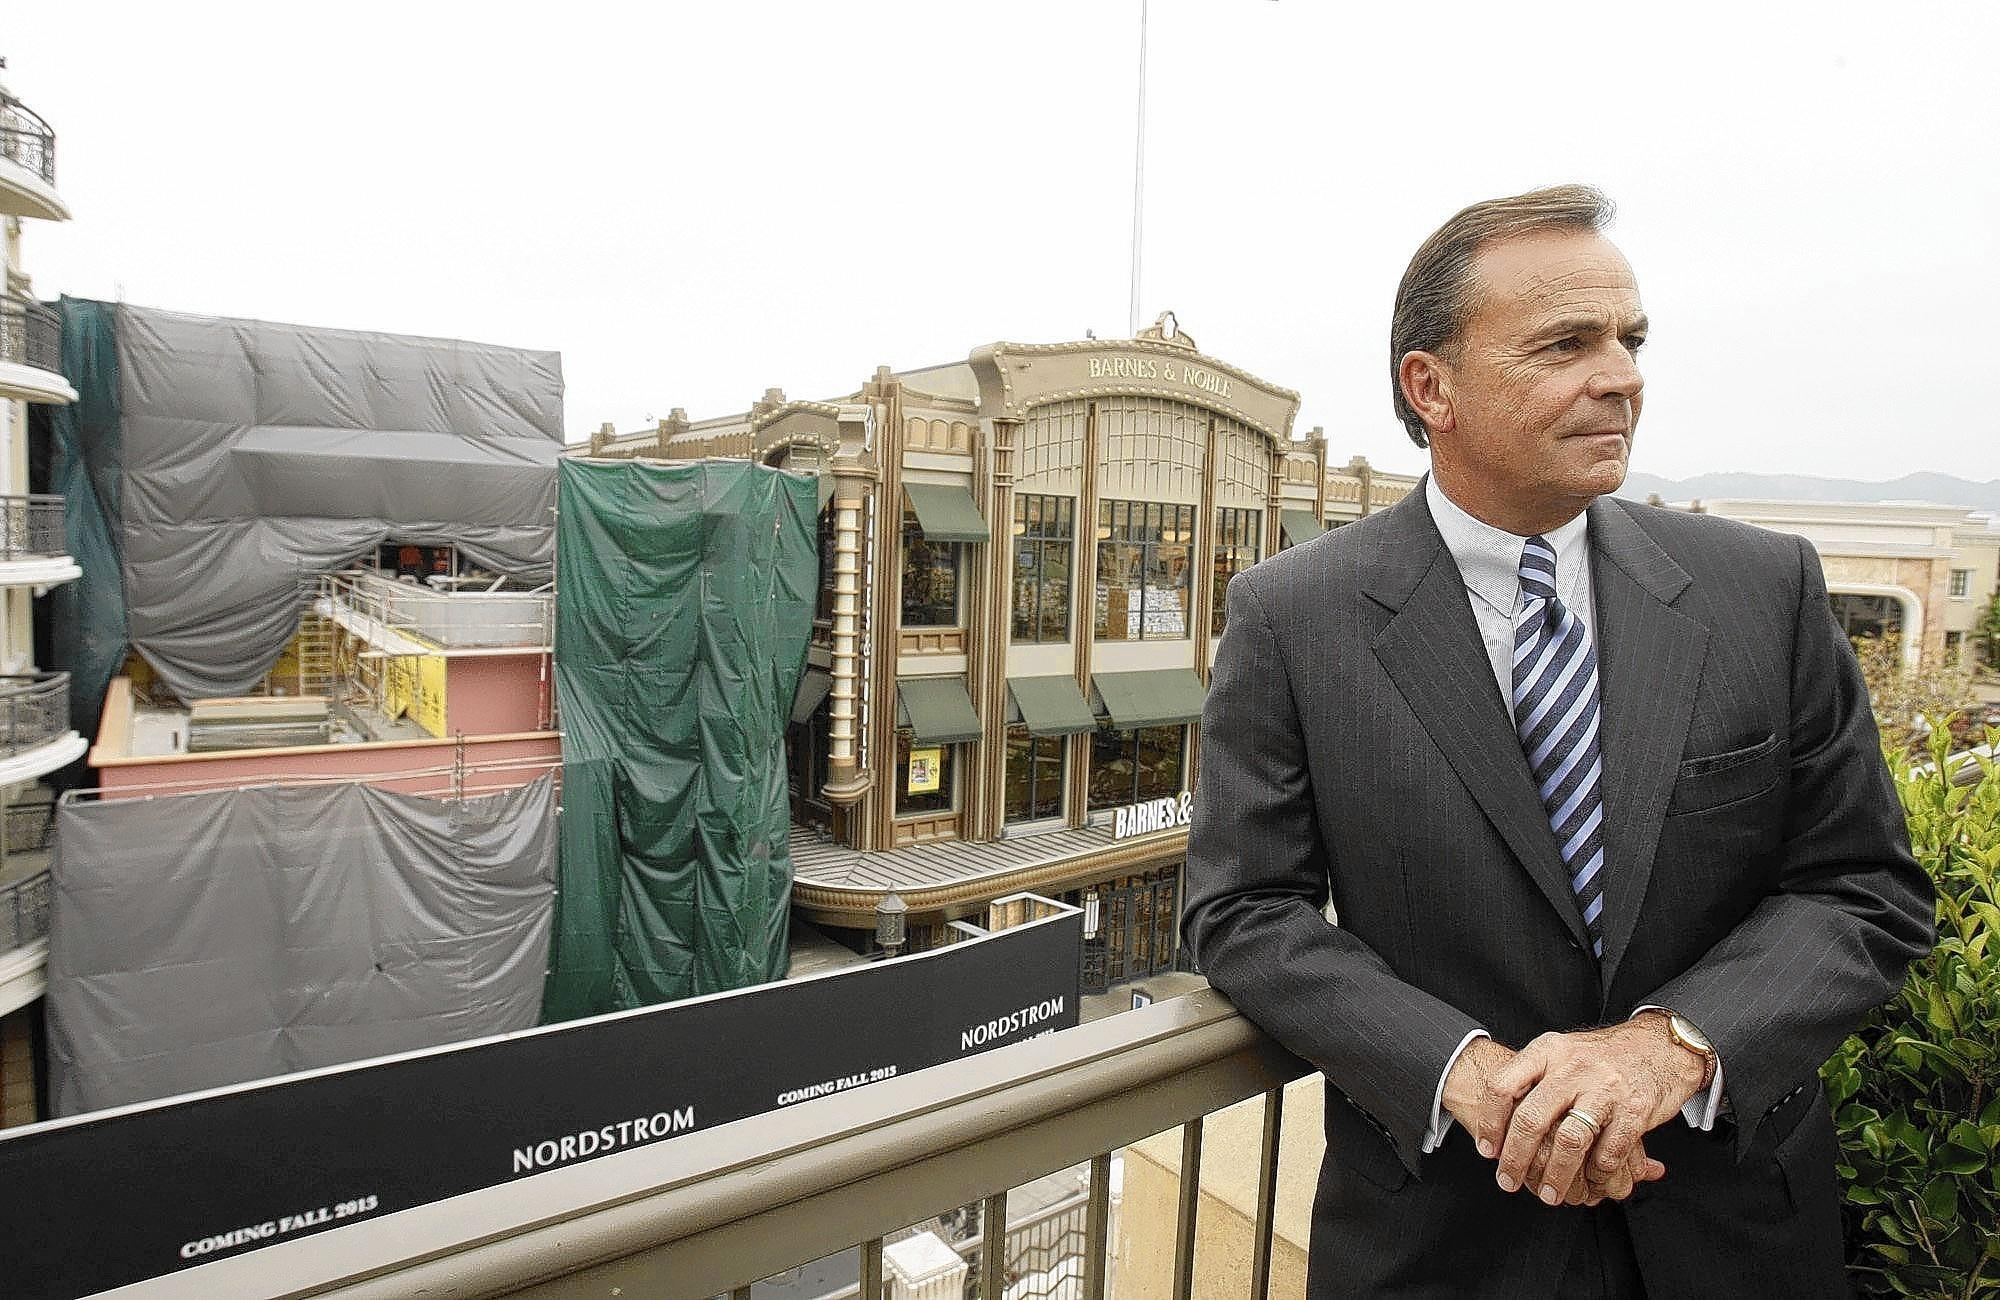 "Rick Caruso, shown last spring at the Americana at Brand mall in Glendale, says he supports a minimum wage hike in L.A. ""Some of the costs will get absorbed by the businesses and some will get passed through to the consumer,"" he said. ""But I think it's good for business in the long run."""